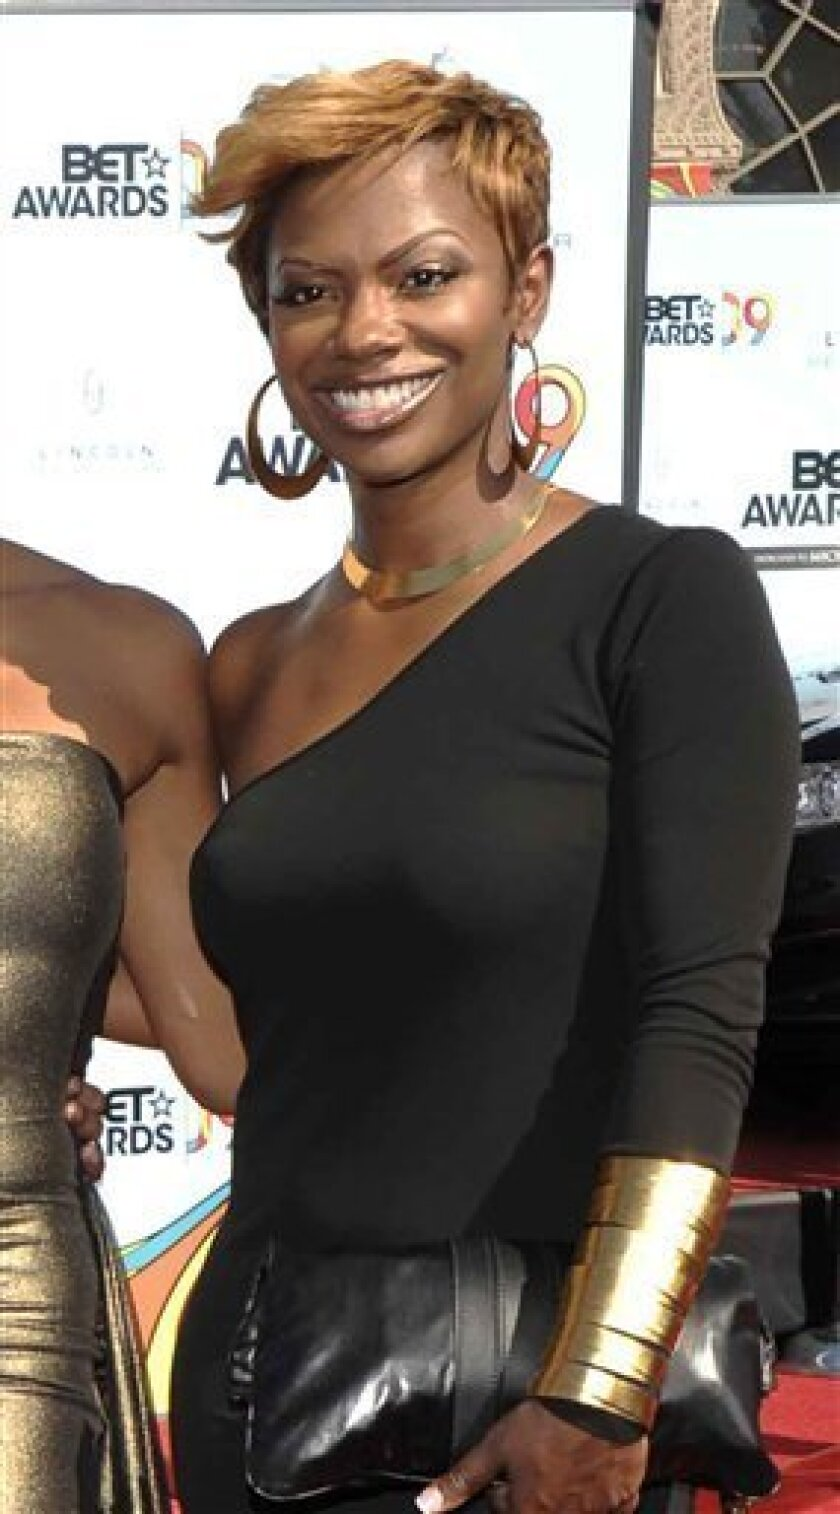 """FILE - In this June 28, 2009 file photo, Kandi Burruss poses as she arrives at the 9th Annual BET Awards in Los Angeles. The former fiance of the cast member from """"The Real Housewives of Atlanta"""" died Friday, Oct. 2, 2009 after a fight outside an Atlanta strip club, and police said they had charged a man in his death. Atlanta police spokesman James Polite said Fredrick Richardson was charged with voluntary manslaughter in the death of Ashley """"A.J."""" Jewell, who died from massive head injuries after the fight in the parking lot of the Body Tap Club. Jewell was engaged to """"Housewives"""" cast member Kandi Burruss until August. (AP Photo/Dan Steinberg, File)"""